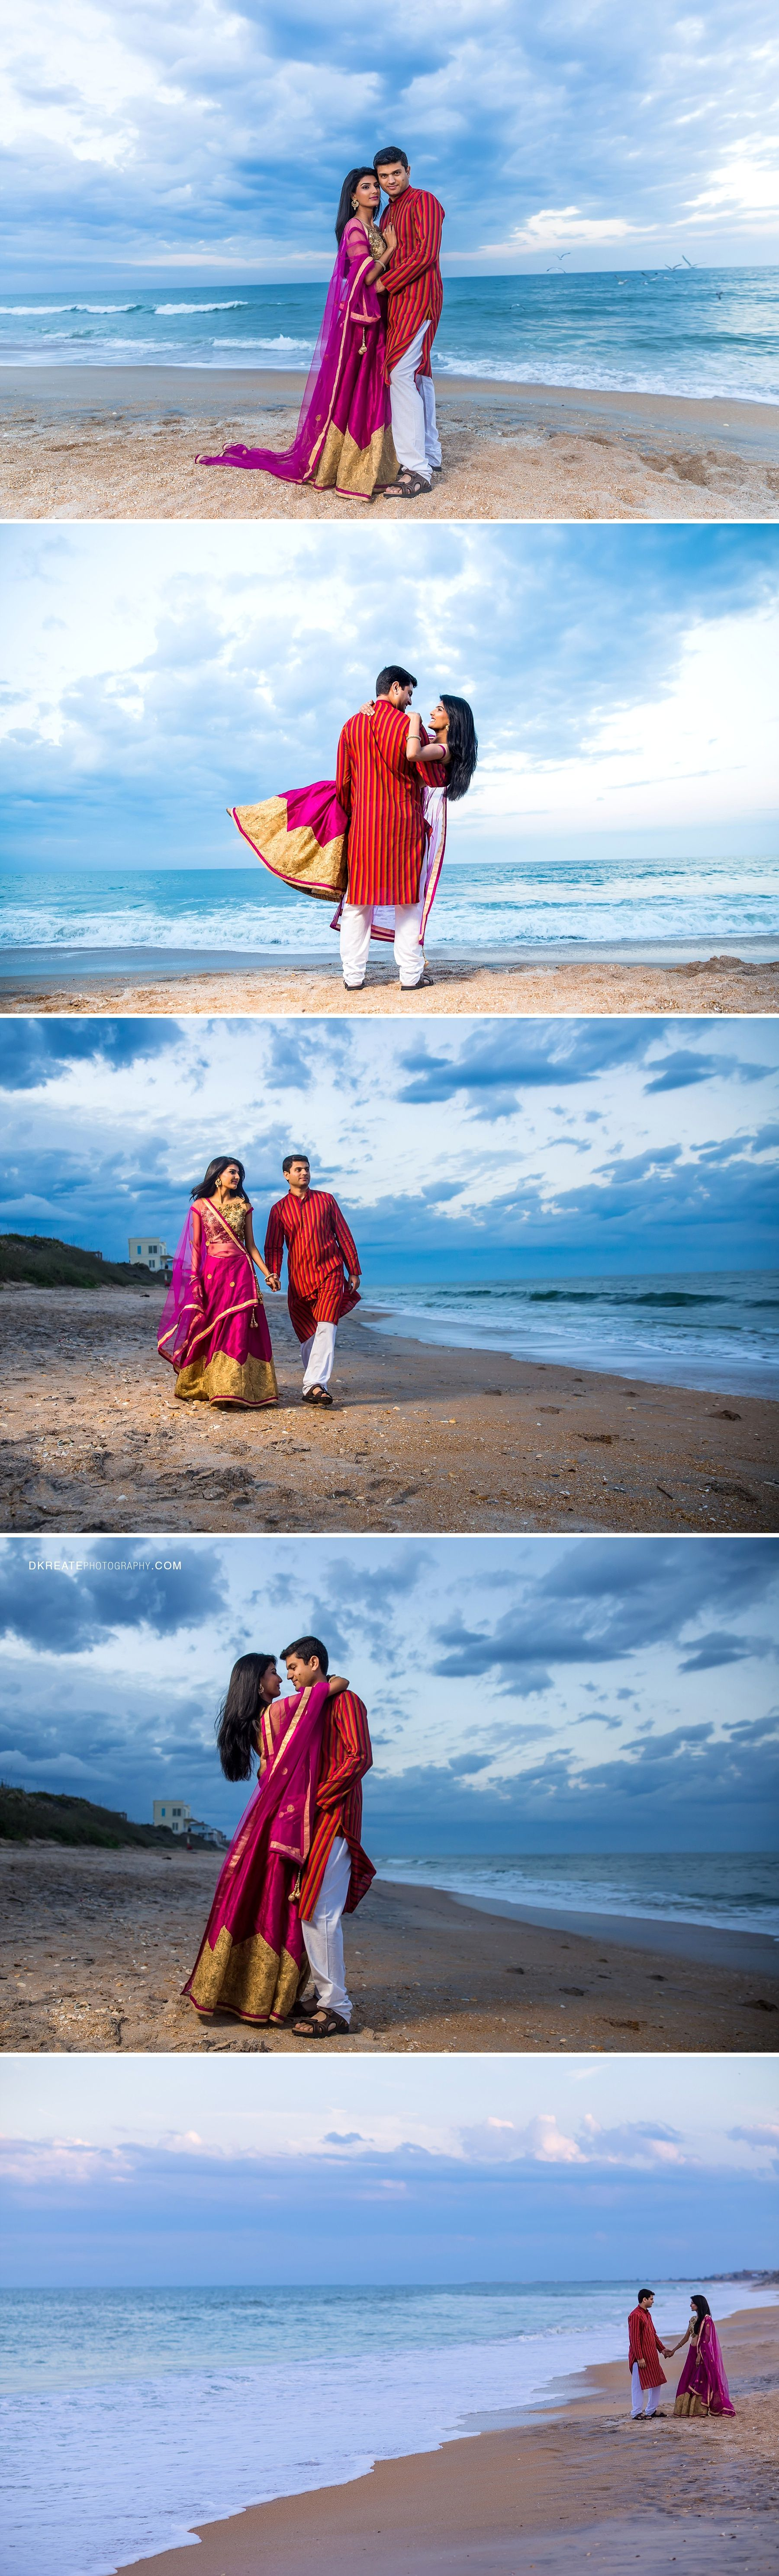 Beach wedding pre shoot  Jacksonville Engagement Photography  Classy colorful traditional